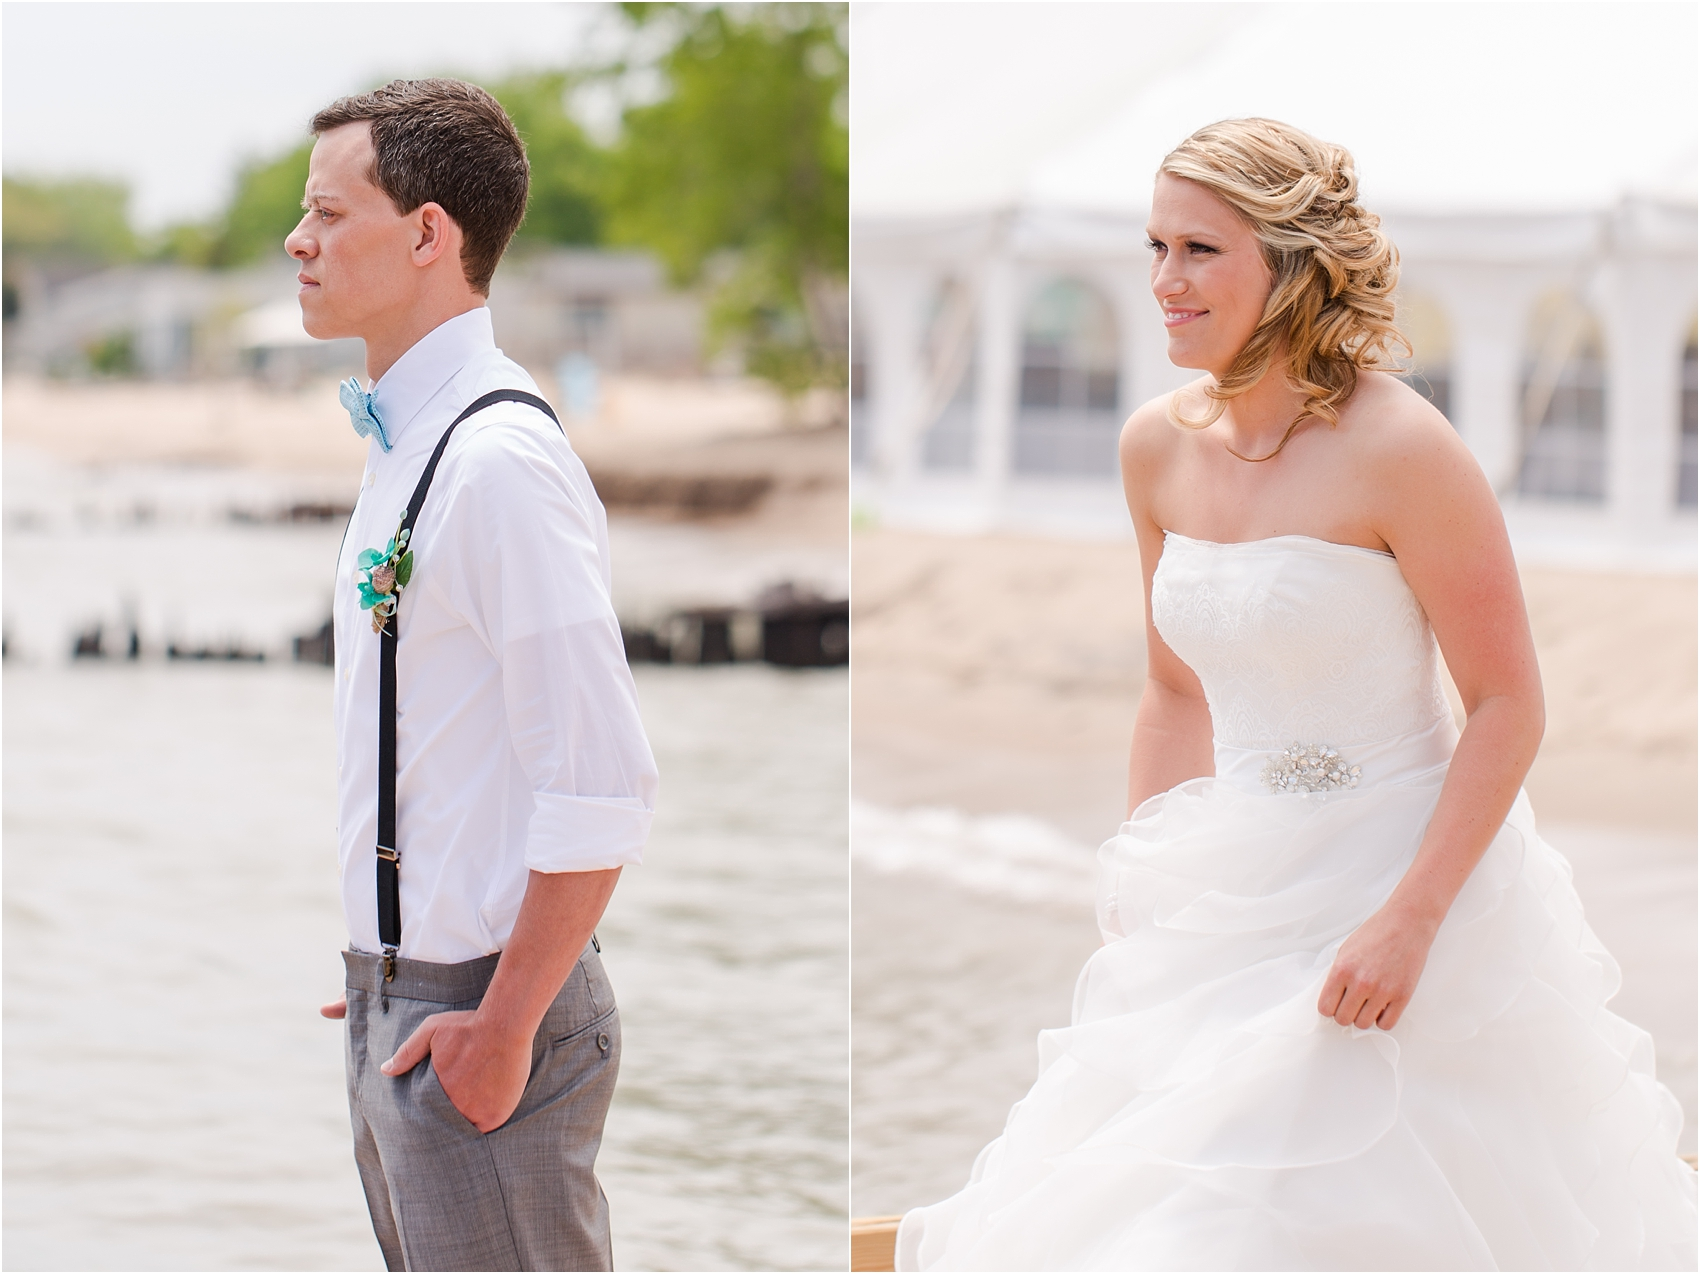 top-five-reasons-to-have-a-first-look-on-your-wedding-day-photos-by-courtney-carolyn-photography_0027.jpg